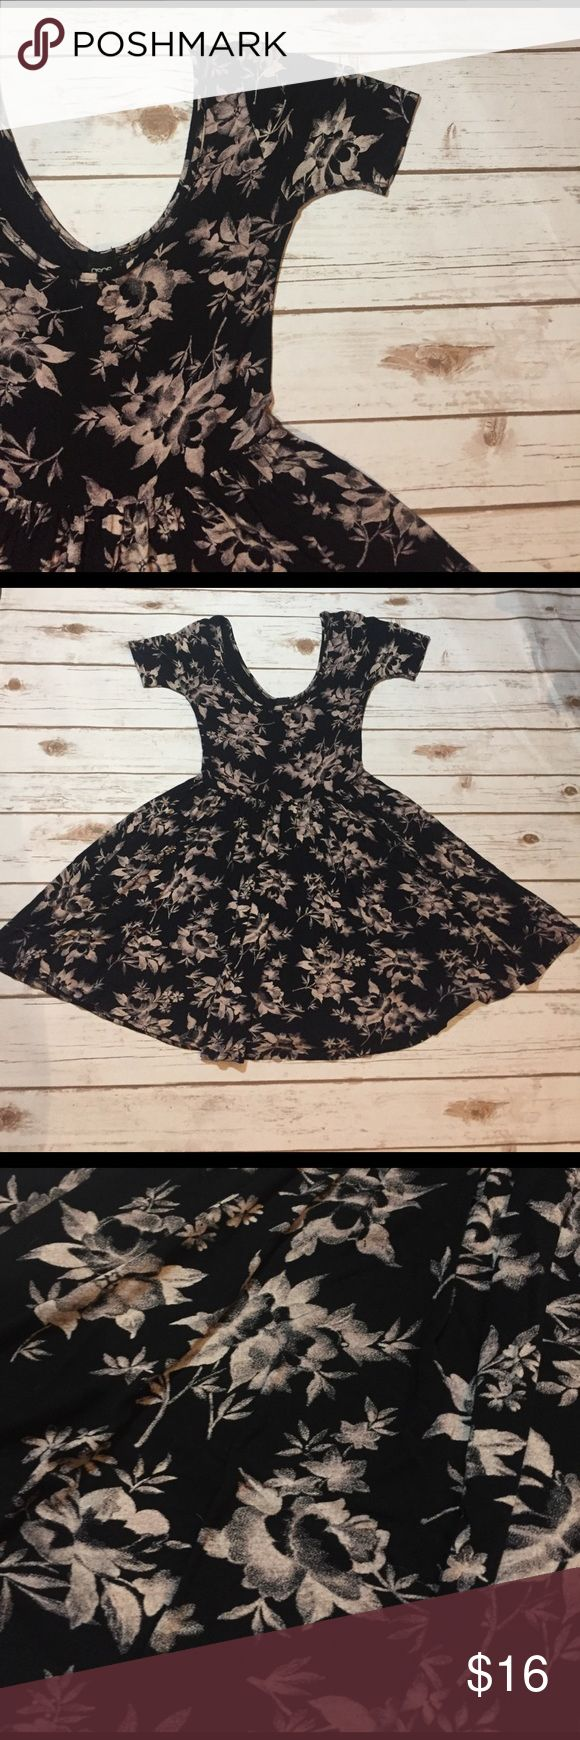 "FLASH sale ASOS Stretchy Skater Dress Size 0 Beautiful flowy dress. 28"" from shoulder seam to hem ASOS Dresses"